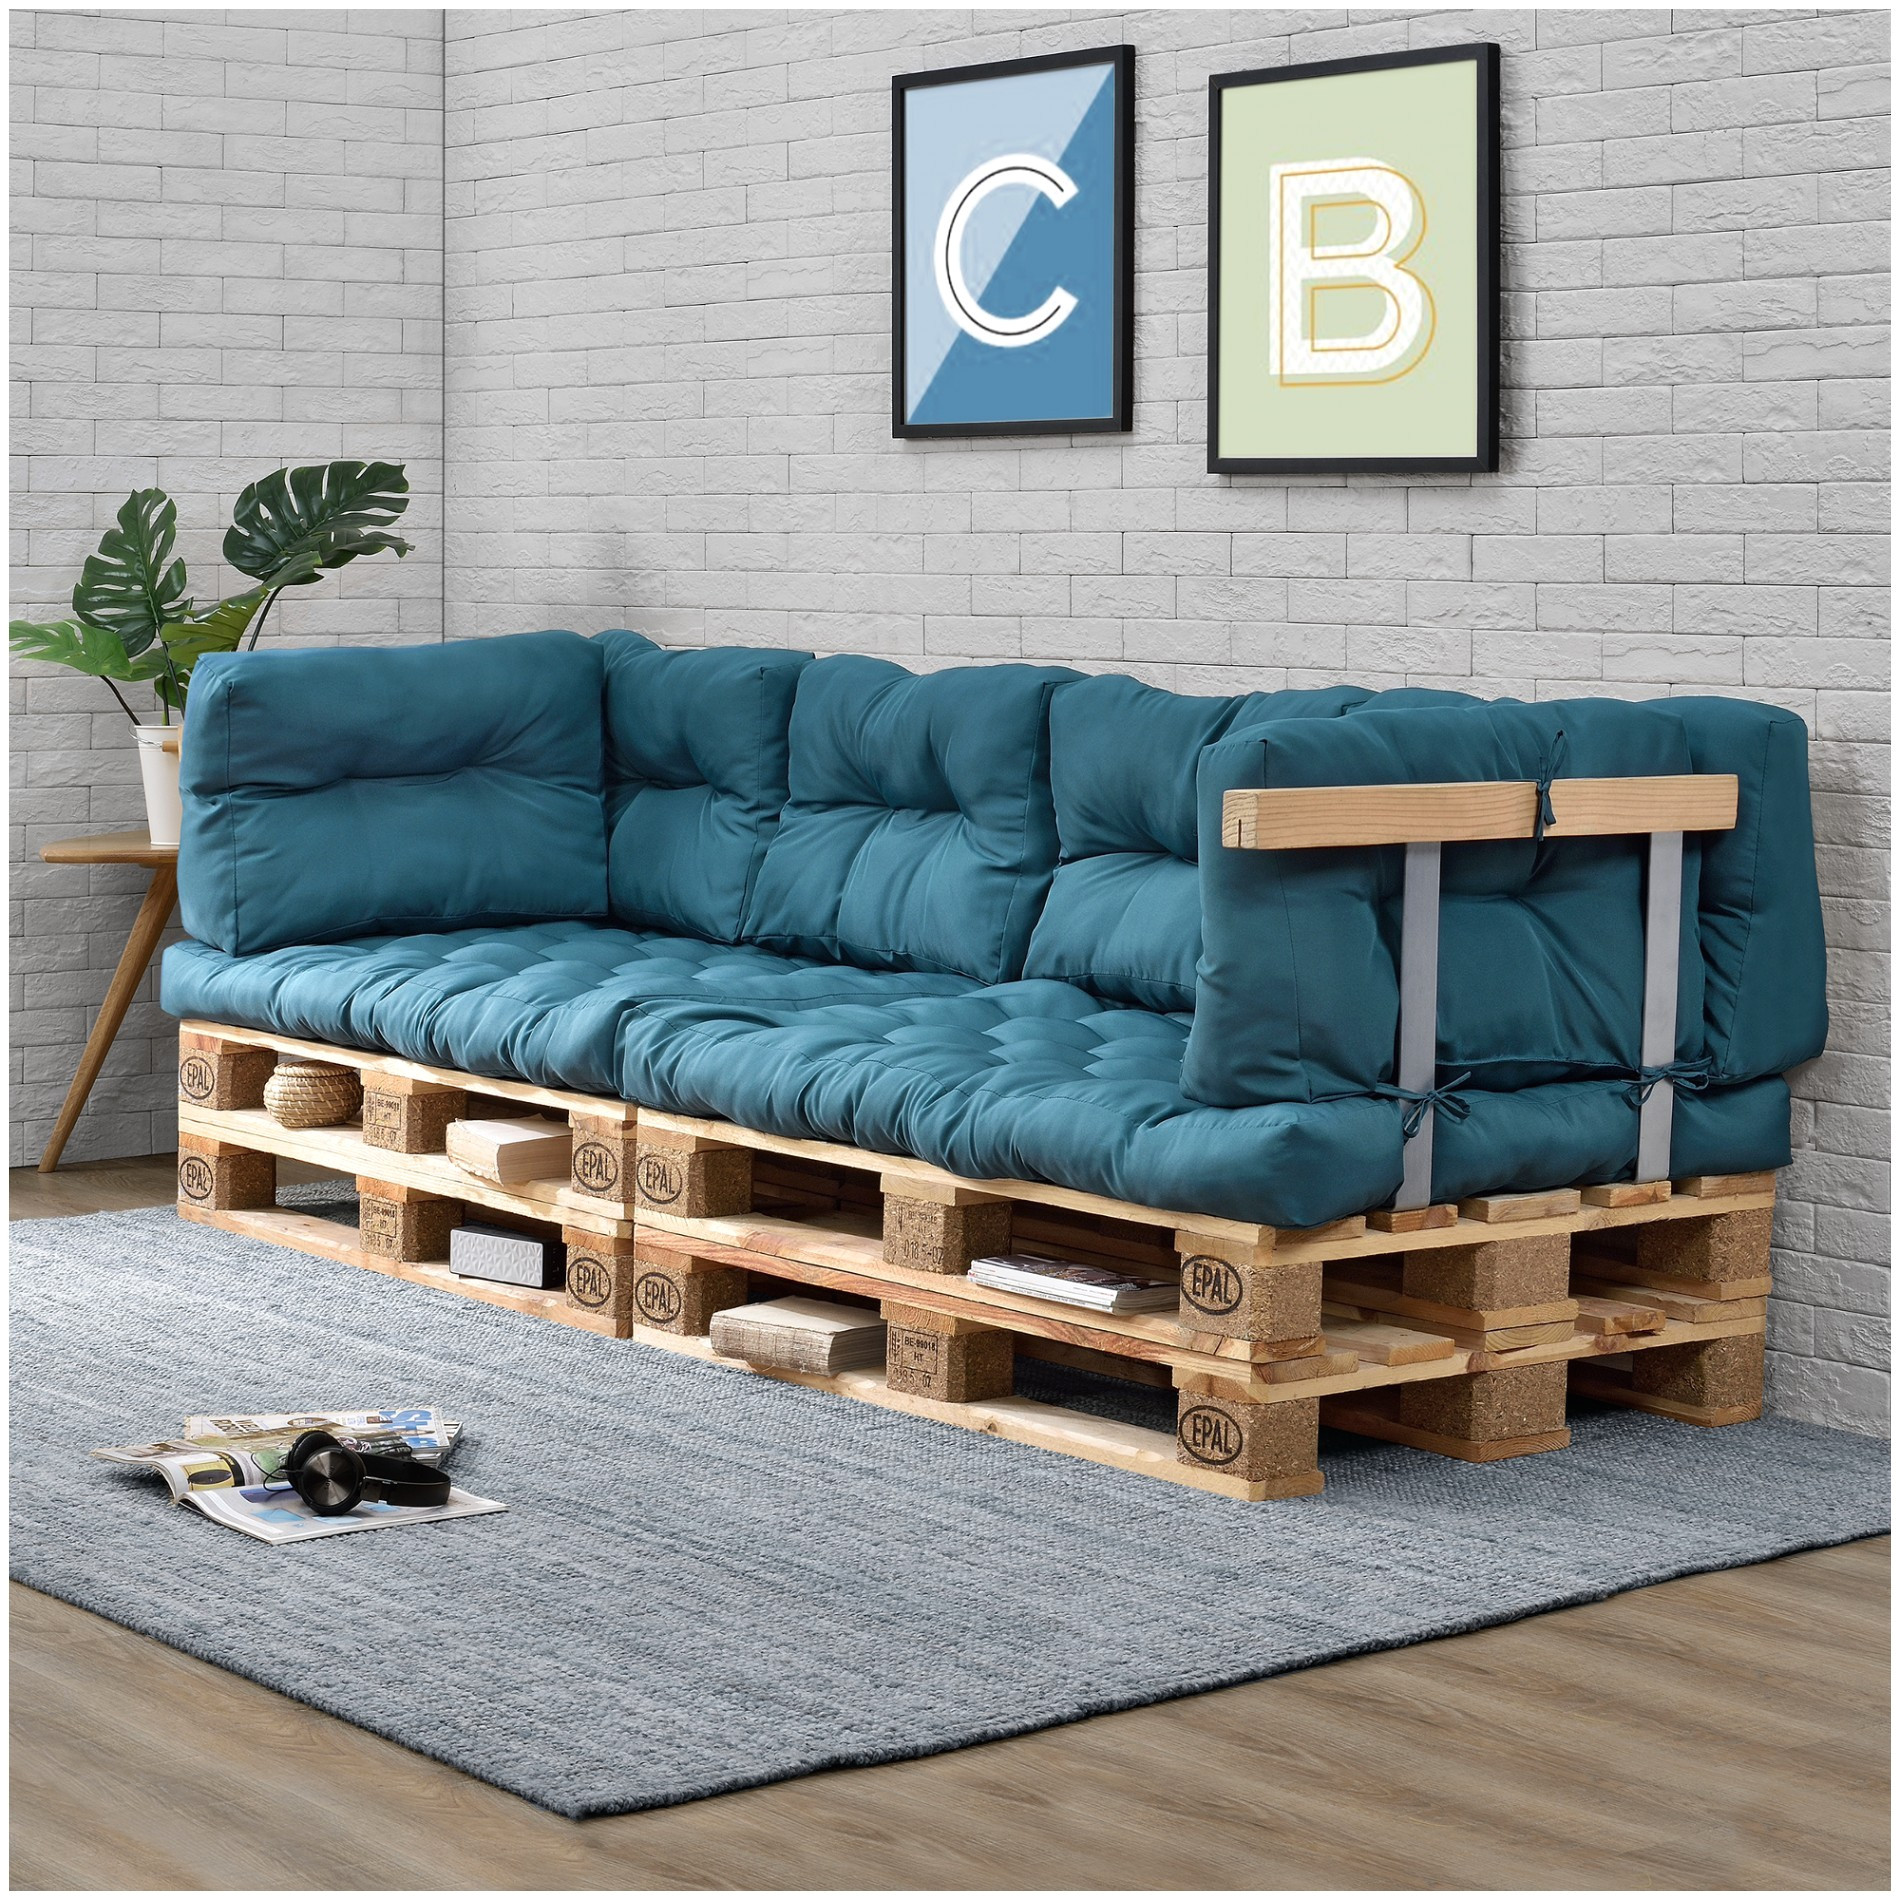 3er Sofa Replacement Cushions For This End Up Sofa 3er Schlafsofa Luxus